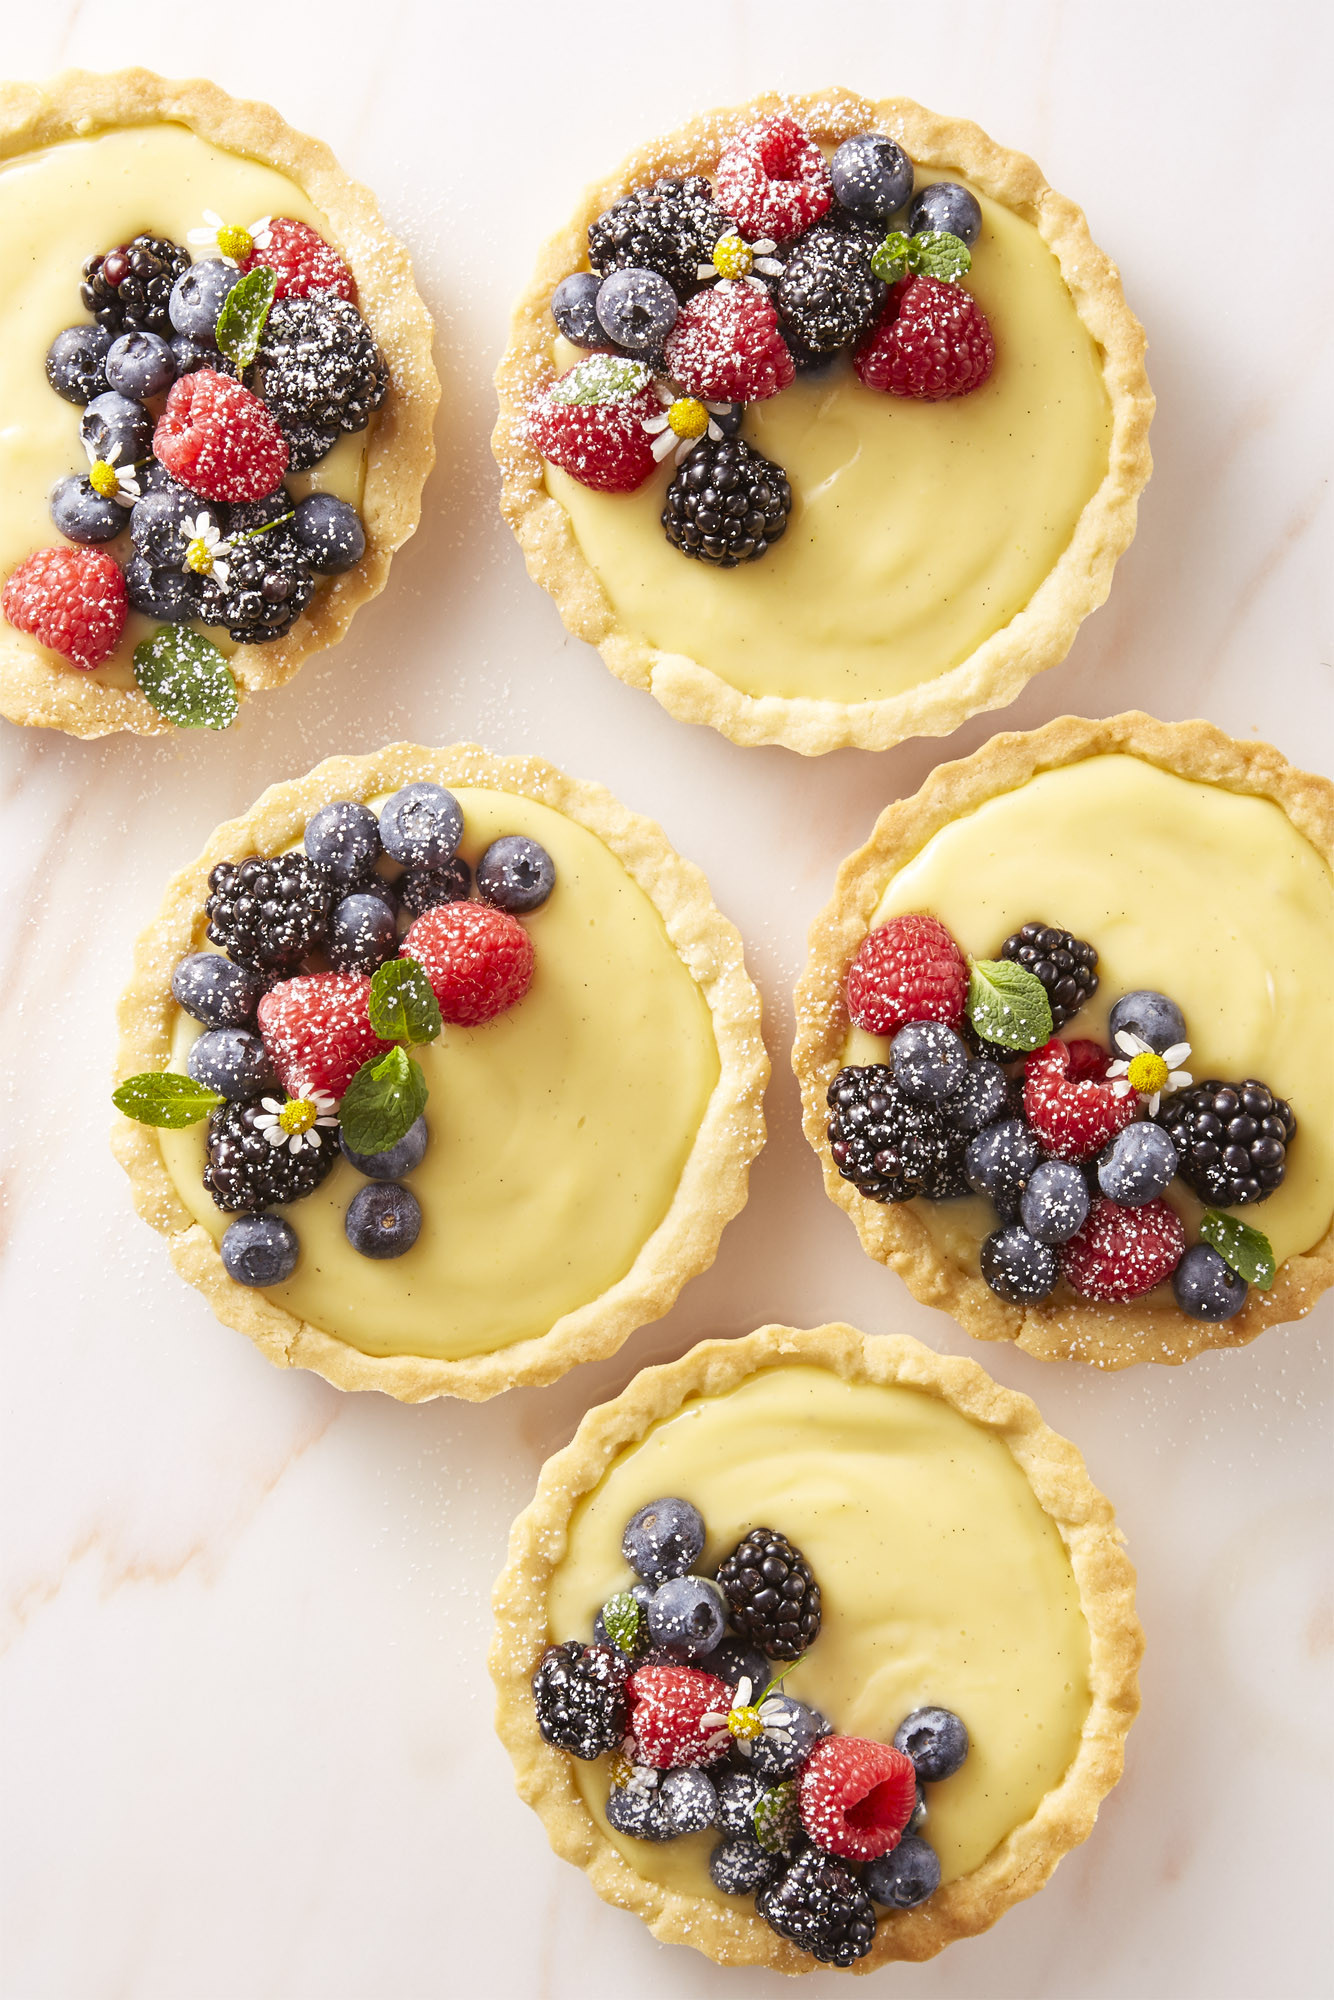 Mothers Day Desserts  20 Cute Mother s Day Dessert Recipes What to Make for